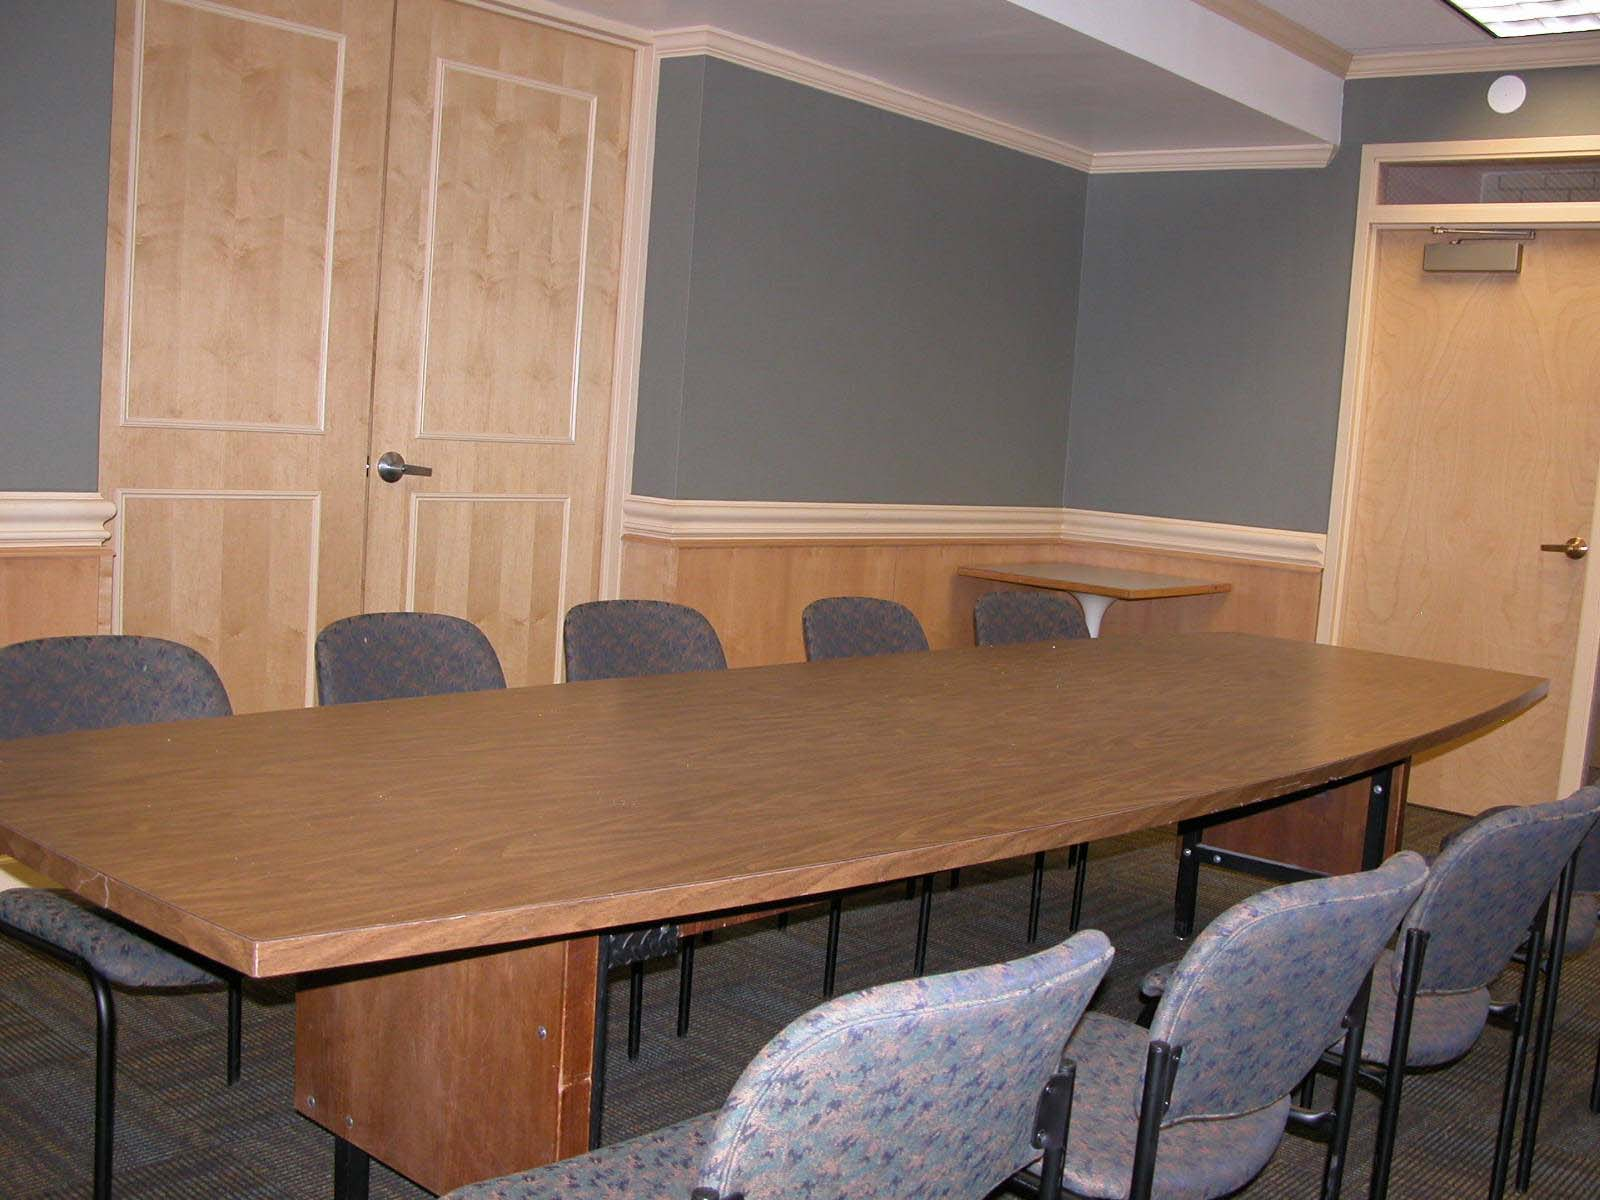 Student Government Room